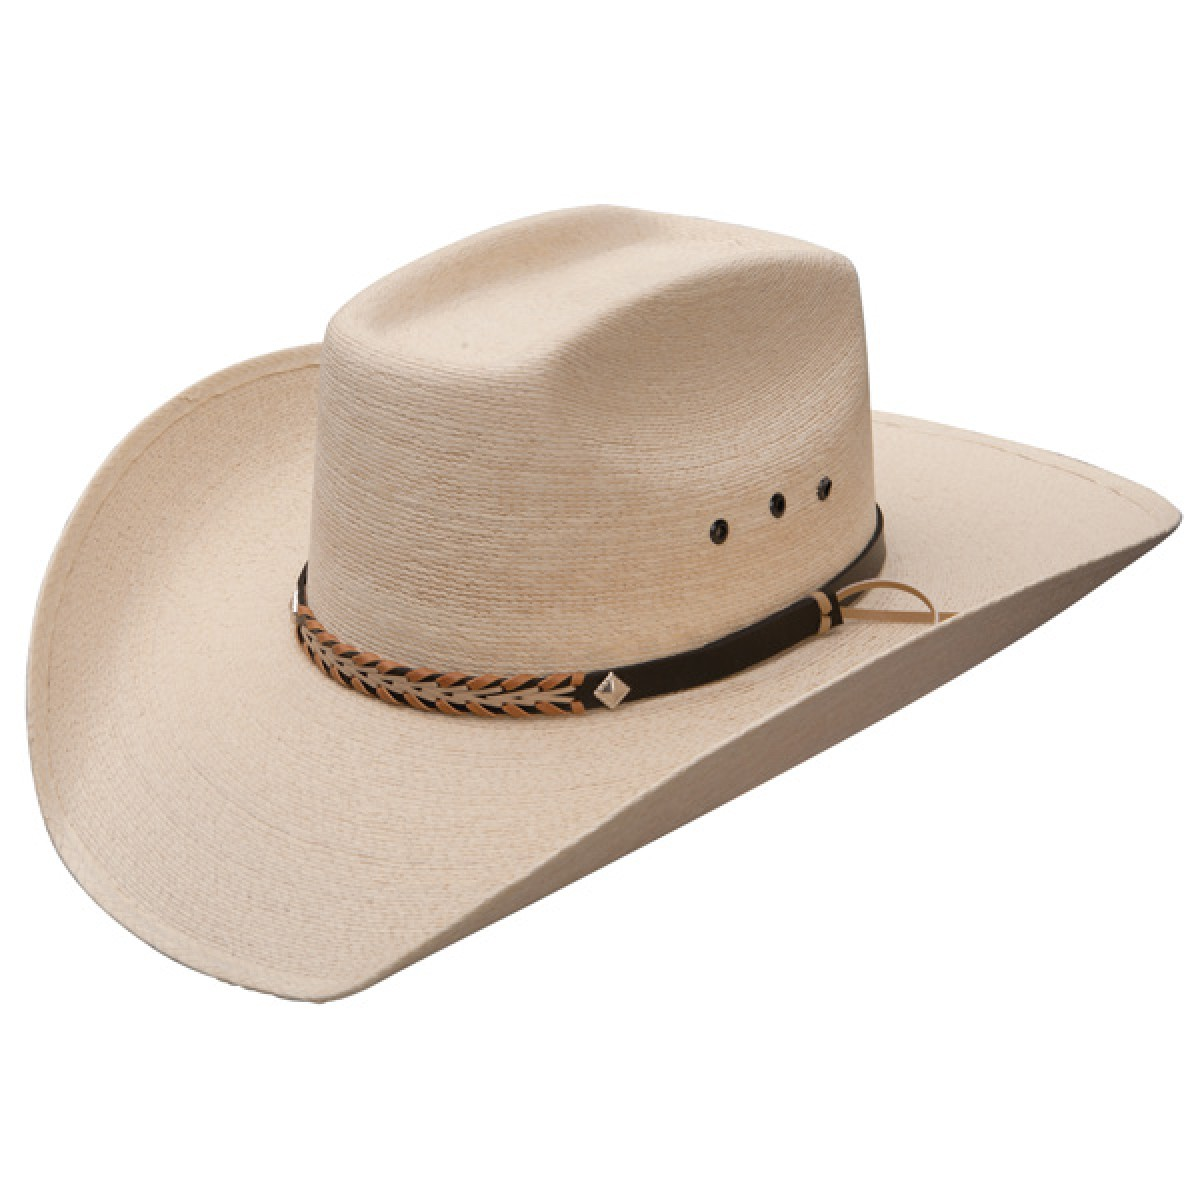 Get that funky look with straw cowboy hats